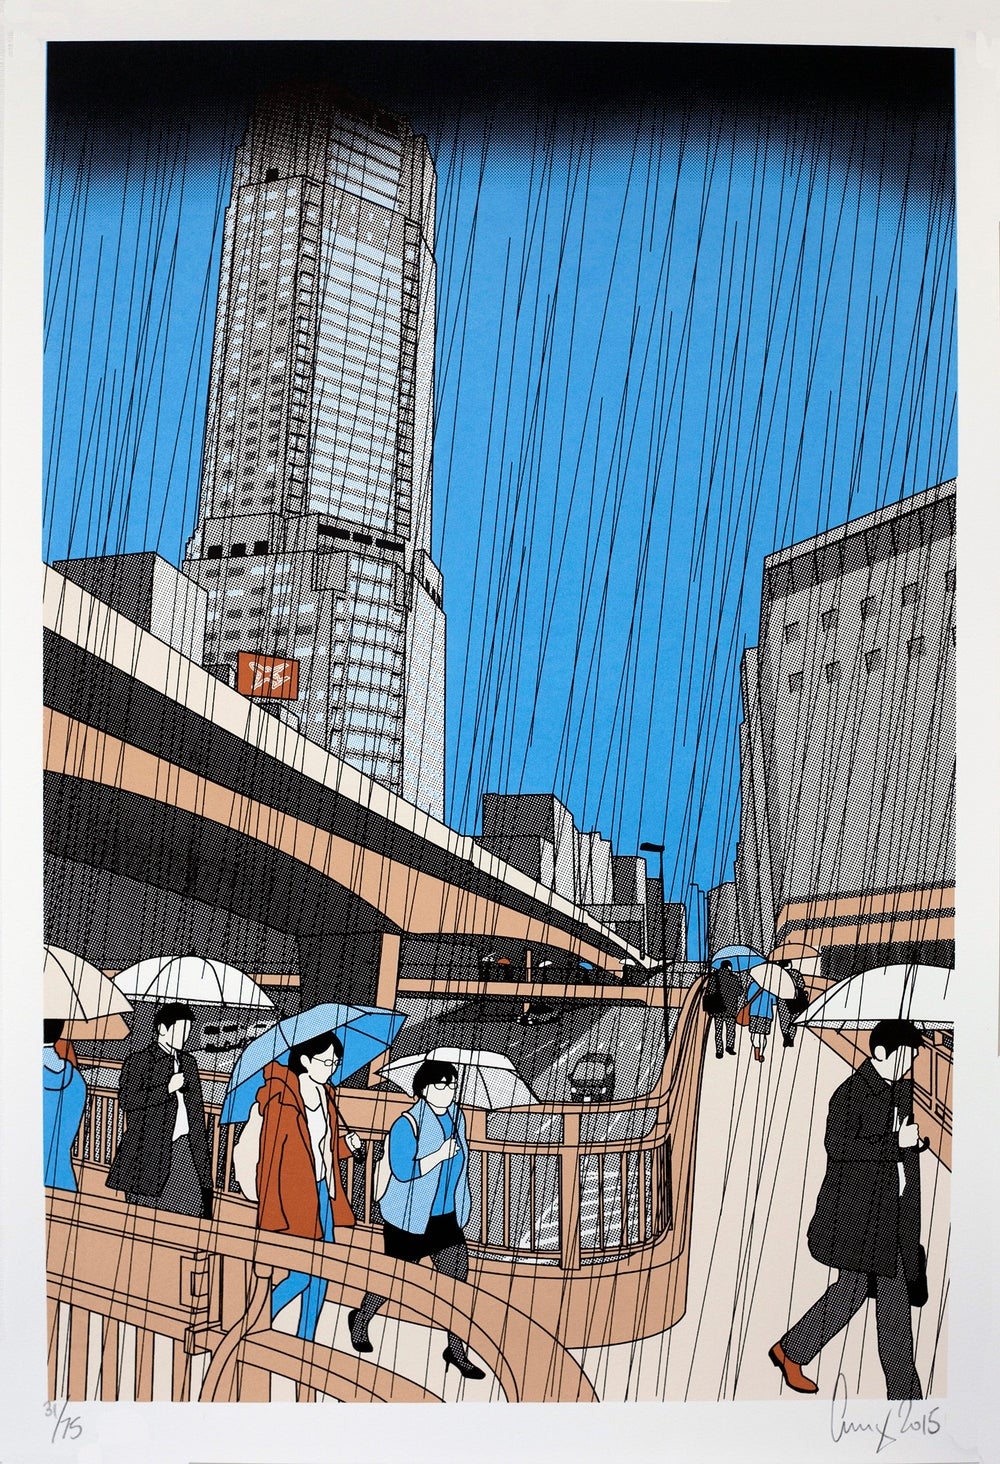 Image of Shibuya in the rain